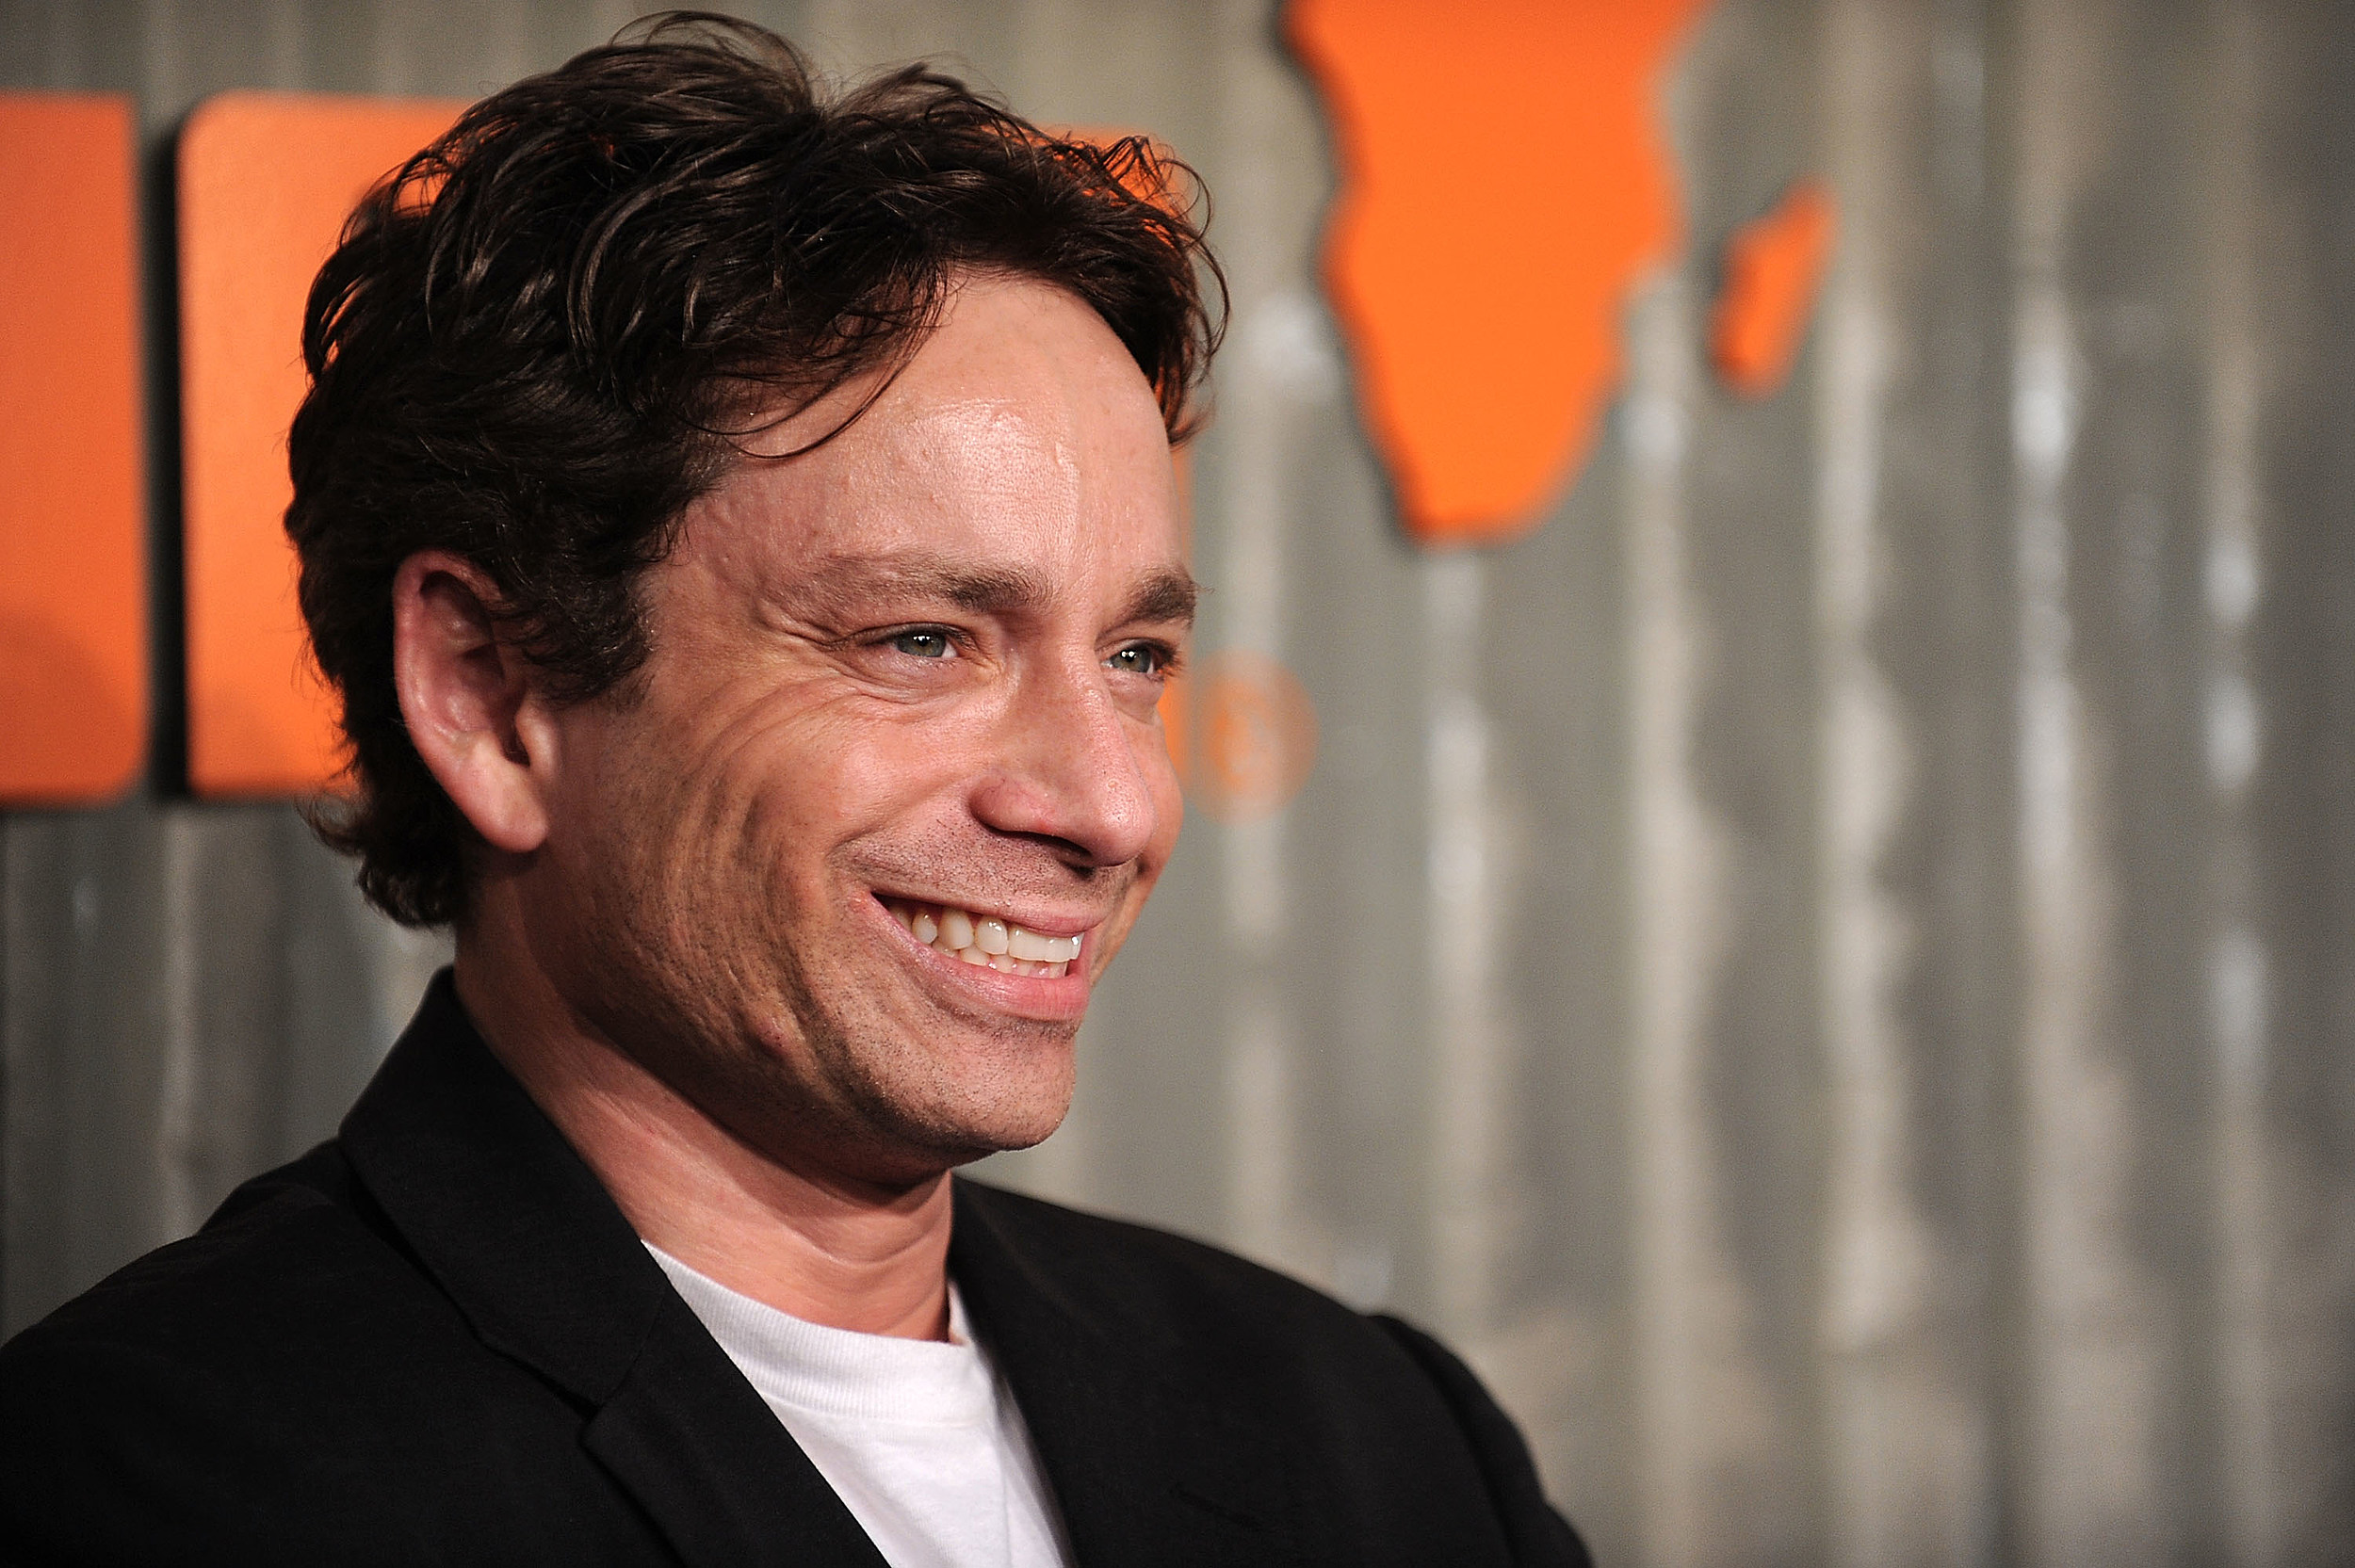 Chris Kattan Is Coming to Shreveport This Summer For Geek'd Con